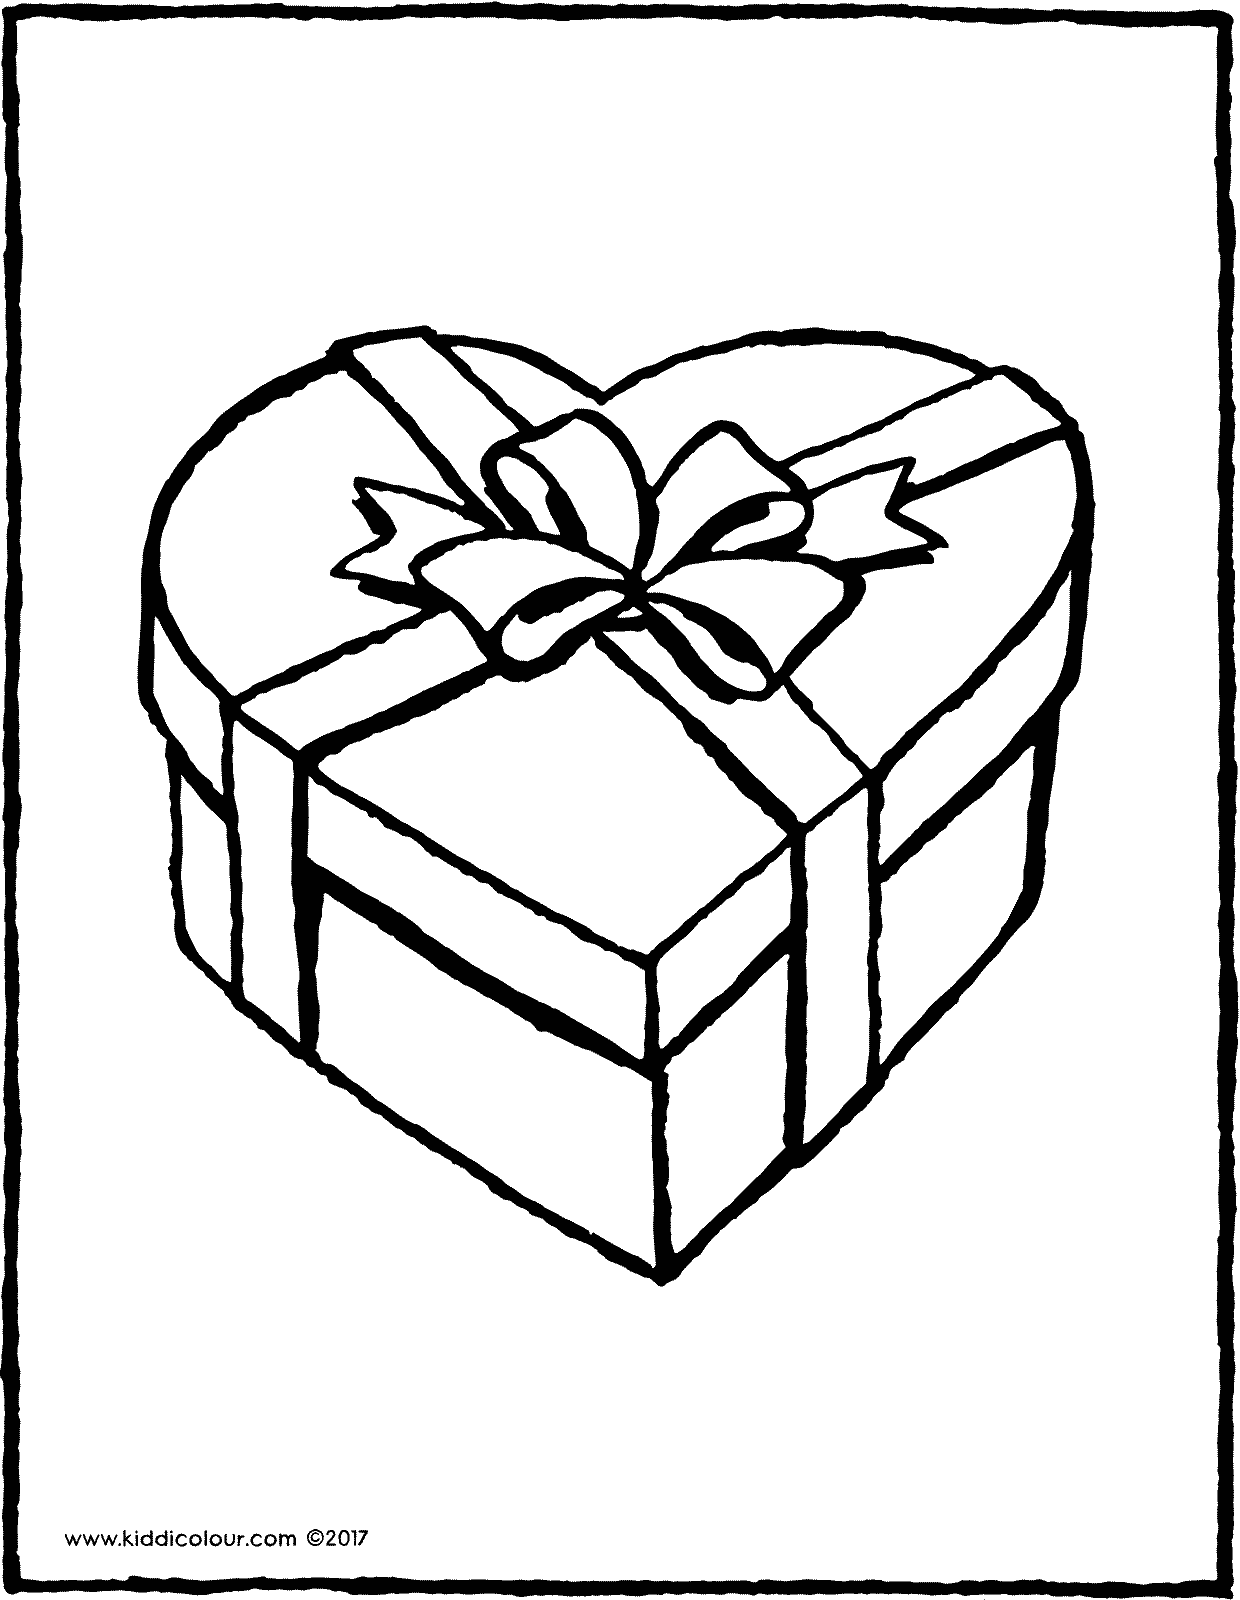 a lovely present colouring page page drawing picture 01V